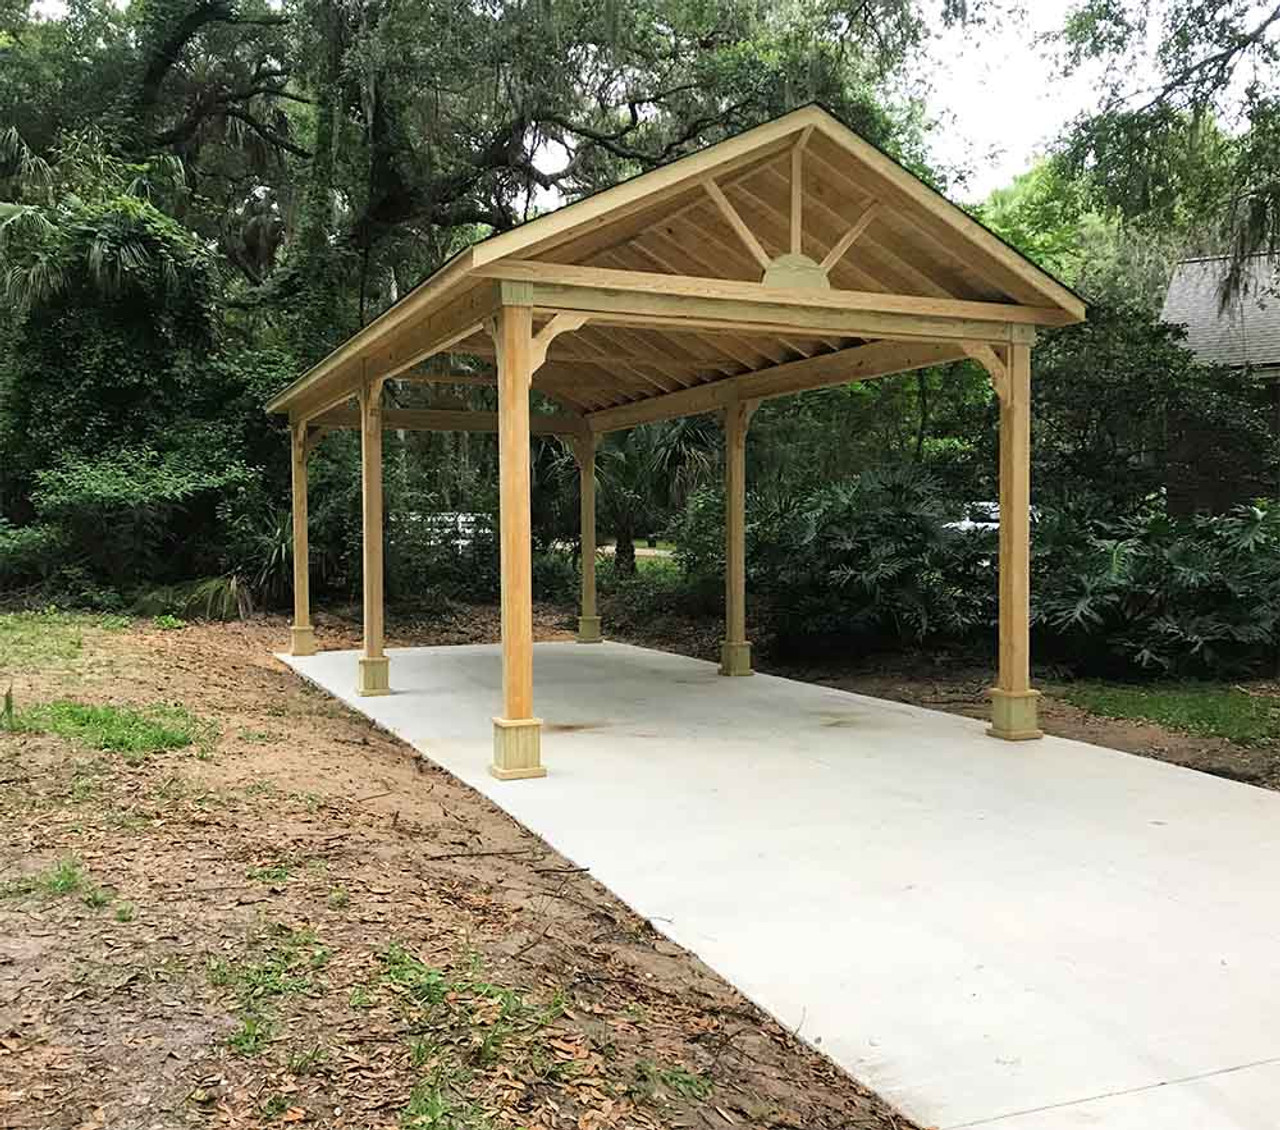 16x34 Pressure Treated Pine Gable Roofed Pavilion Vedra Beach Florida